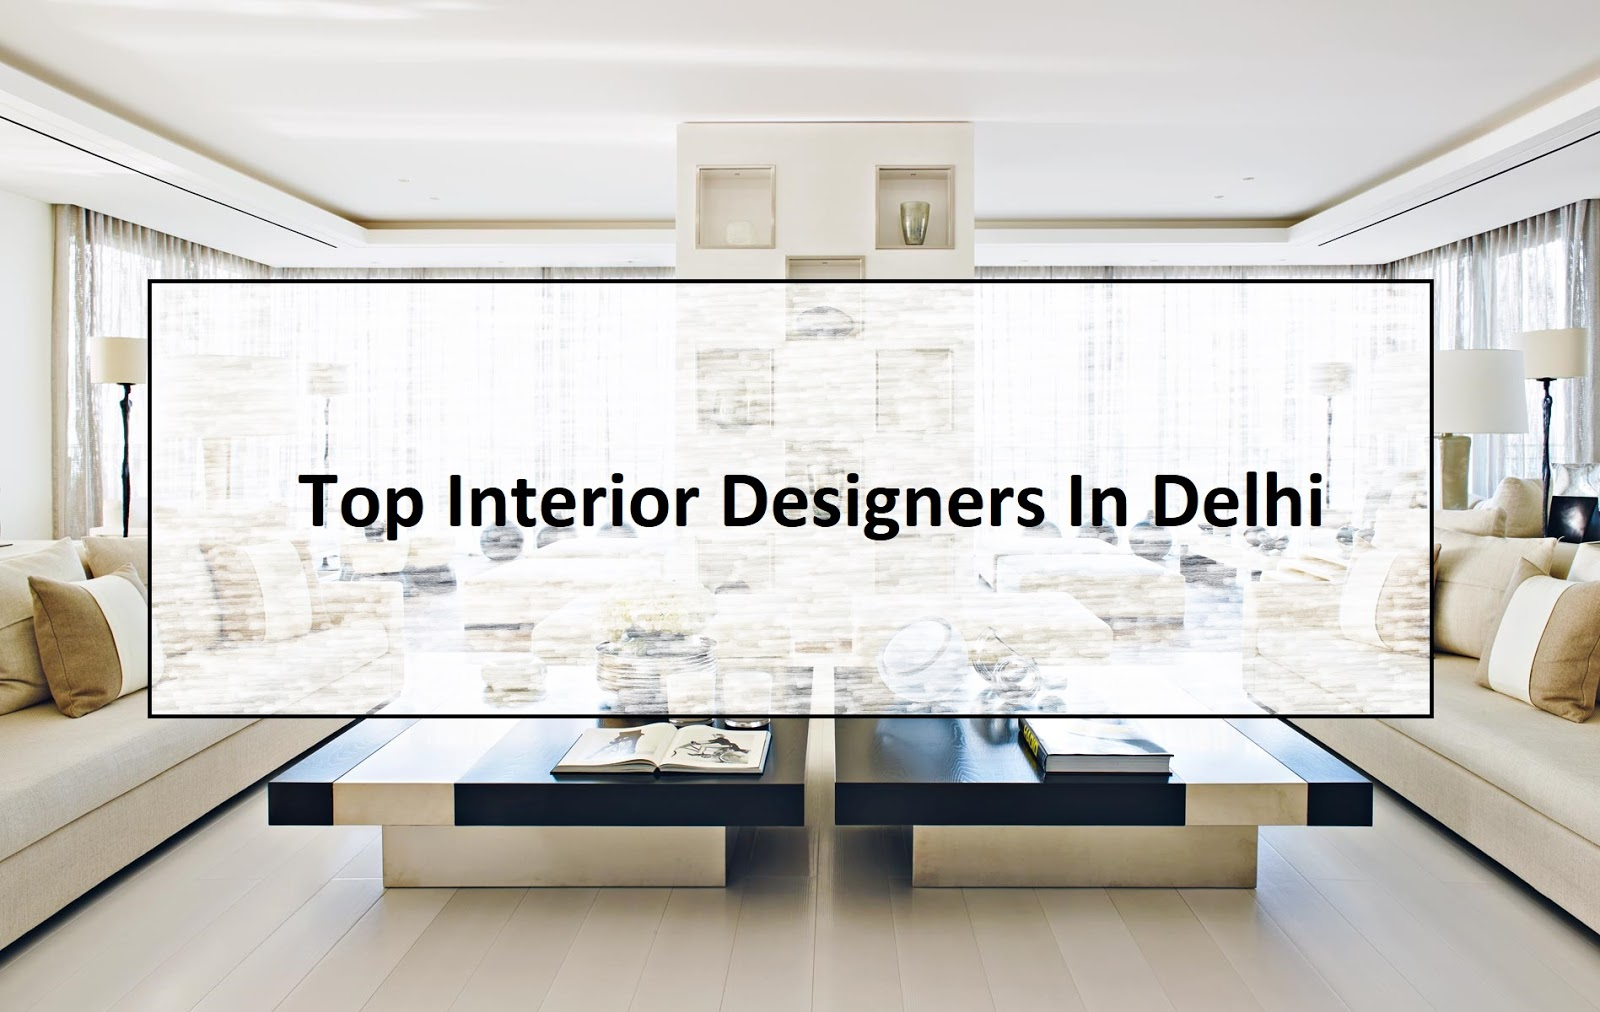 interior designers in delhi - Top Rated Interior Designers